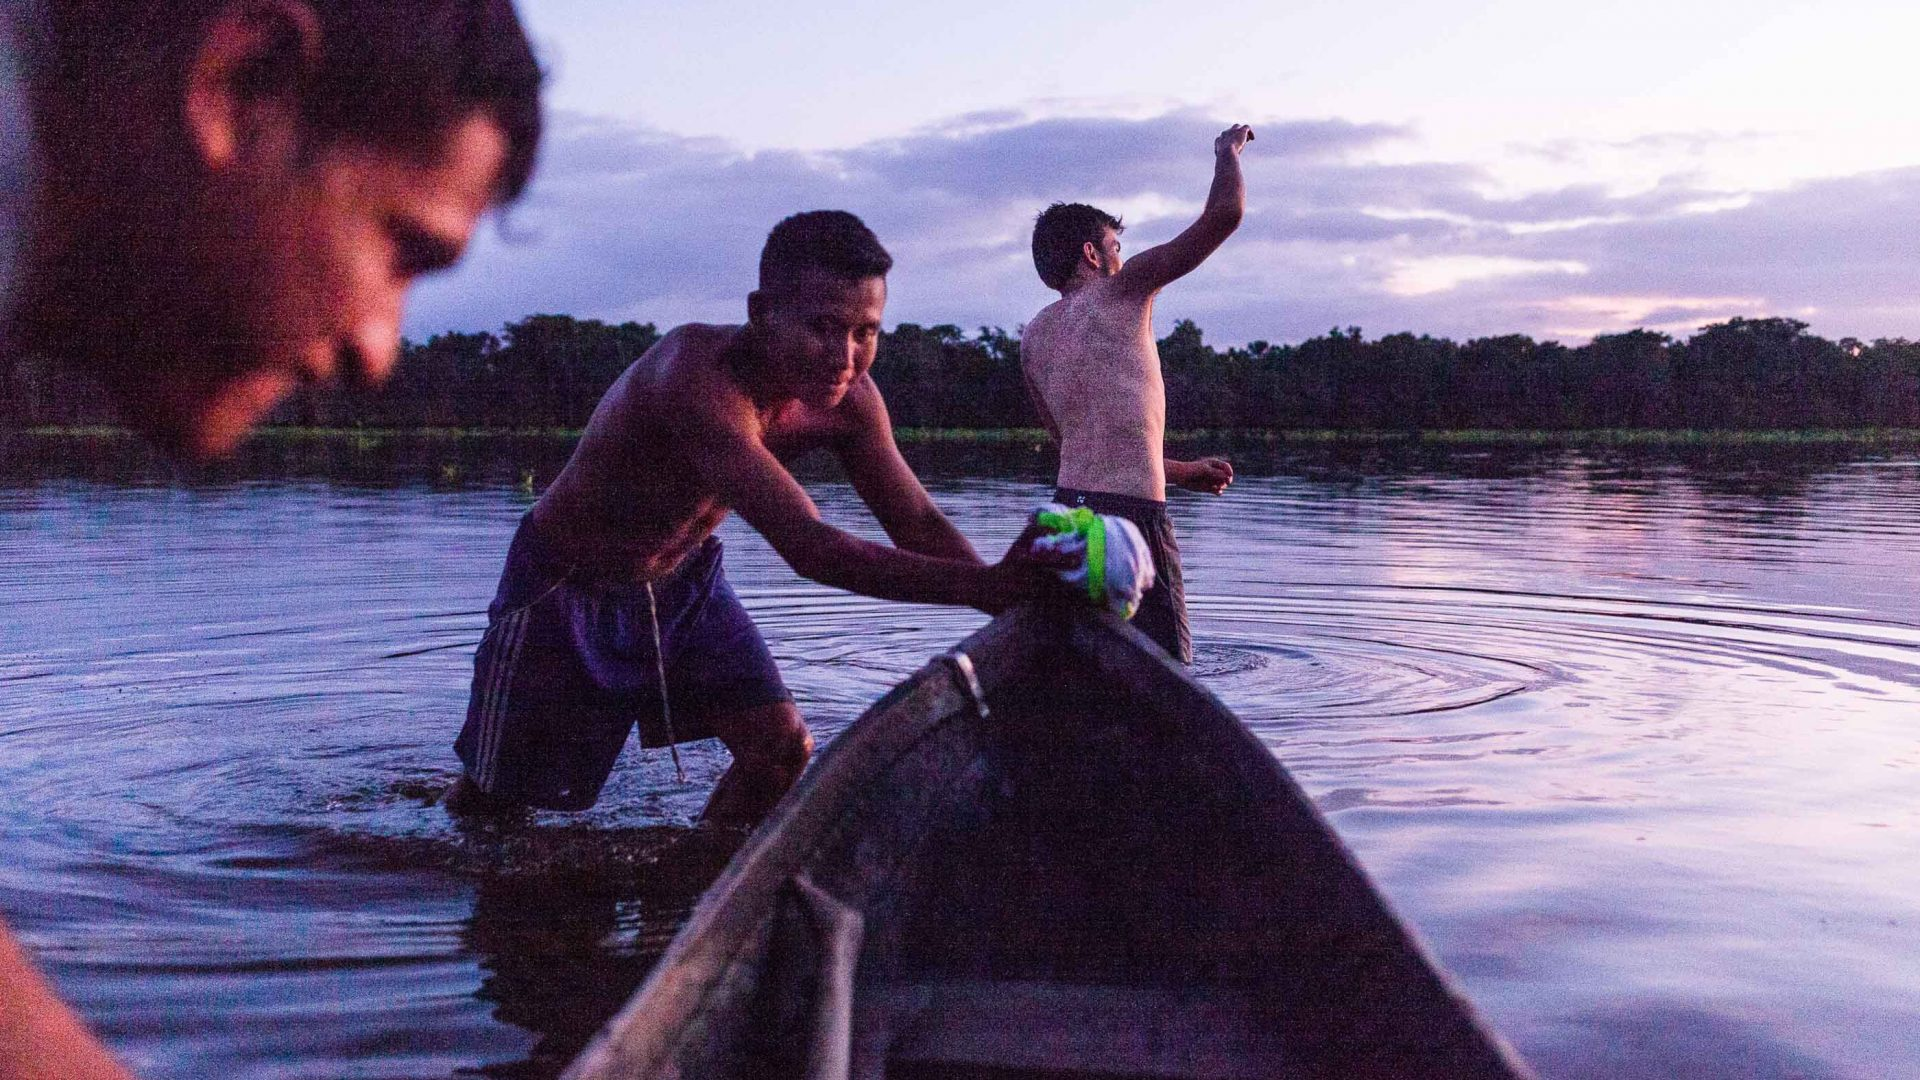 Warao teenagers play along the Orinoco River in Venezuela.